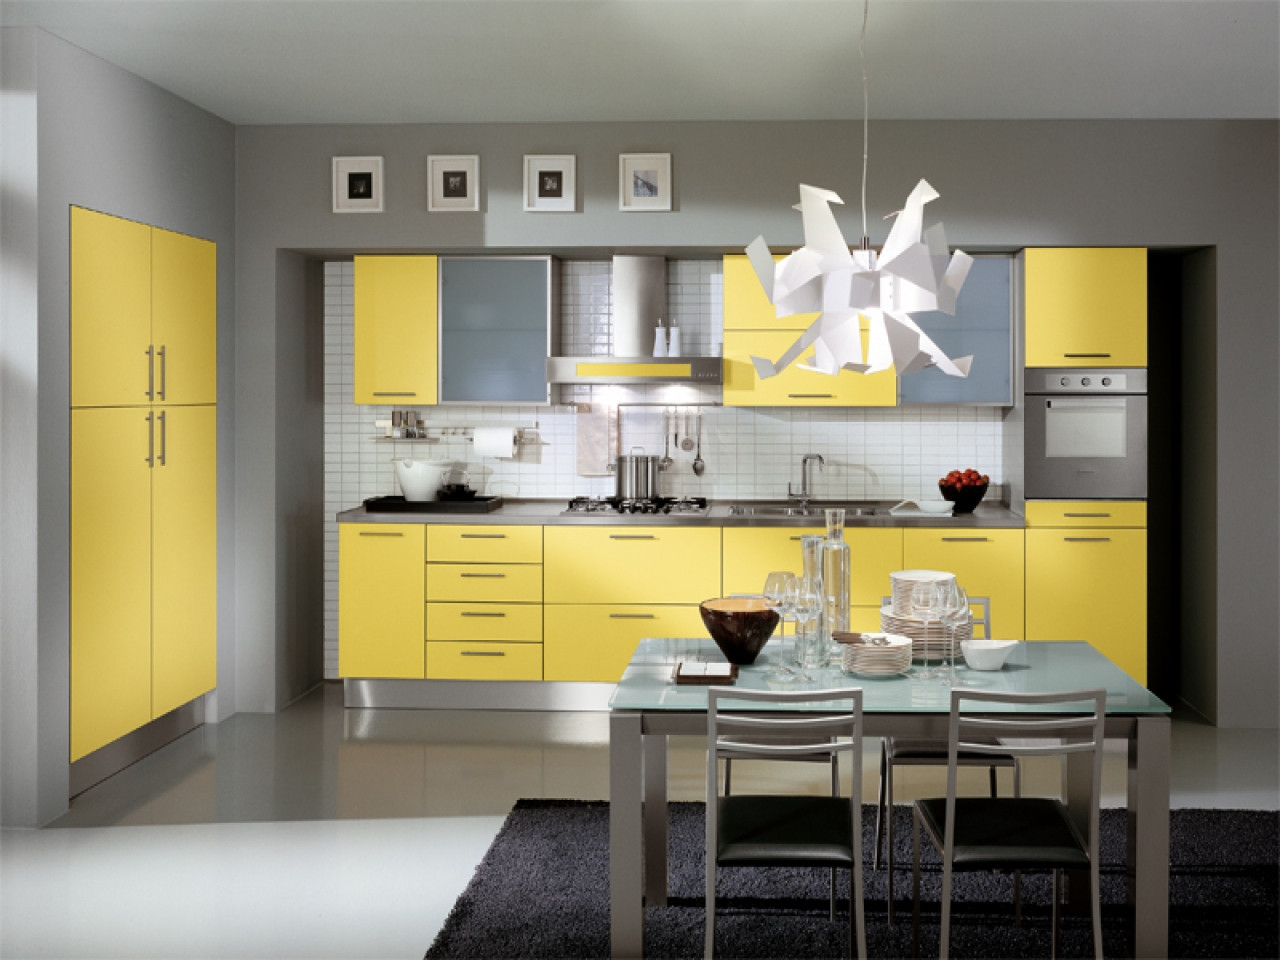 Best ideas about Yellow Kitchen Decorating Ideas . Save or Pin Kitchen decorating ideas with red accents grey and yellow Now.